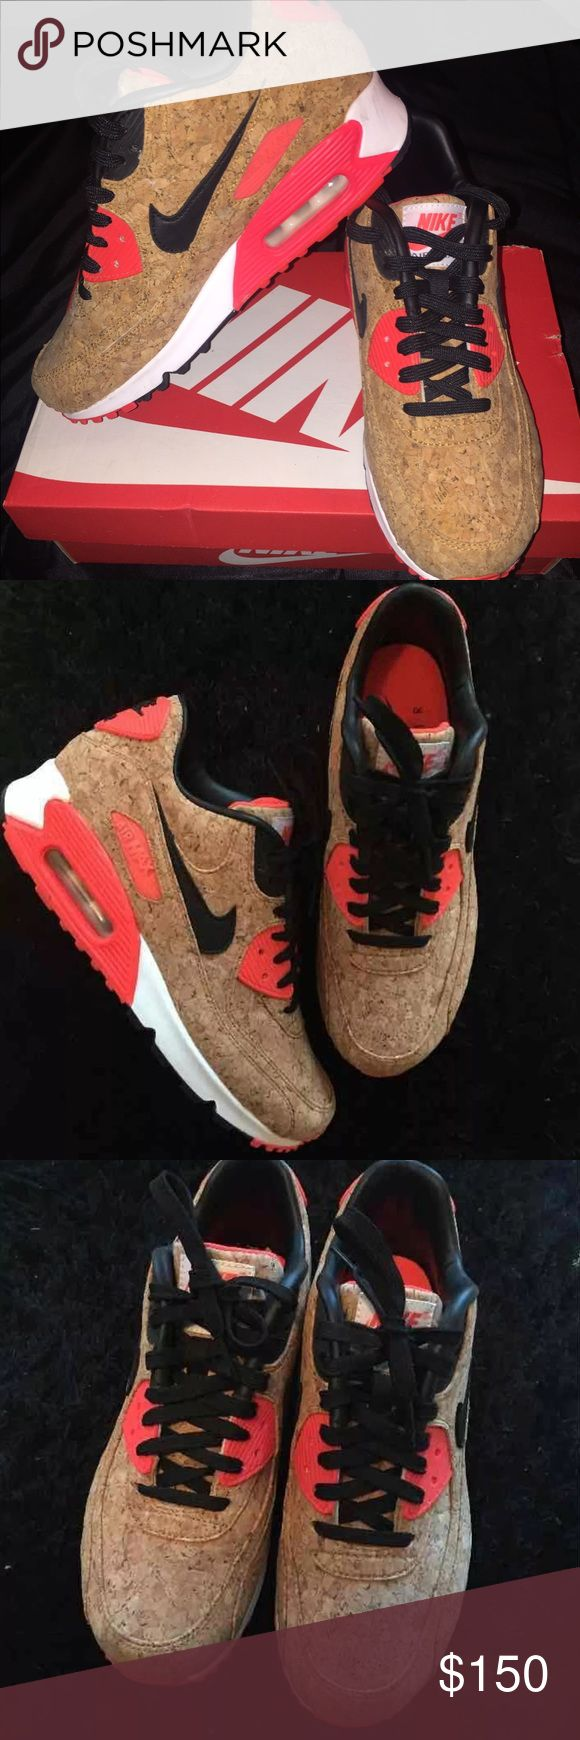 Nike Air Max's -WORE ONCE -Cork material with leather in the inside - Colors are infrared red, cork material , black & white - Comes with box, just let me know if you would like it also. Nike Shoes Sneakers